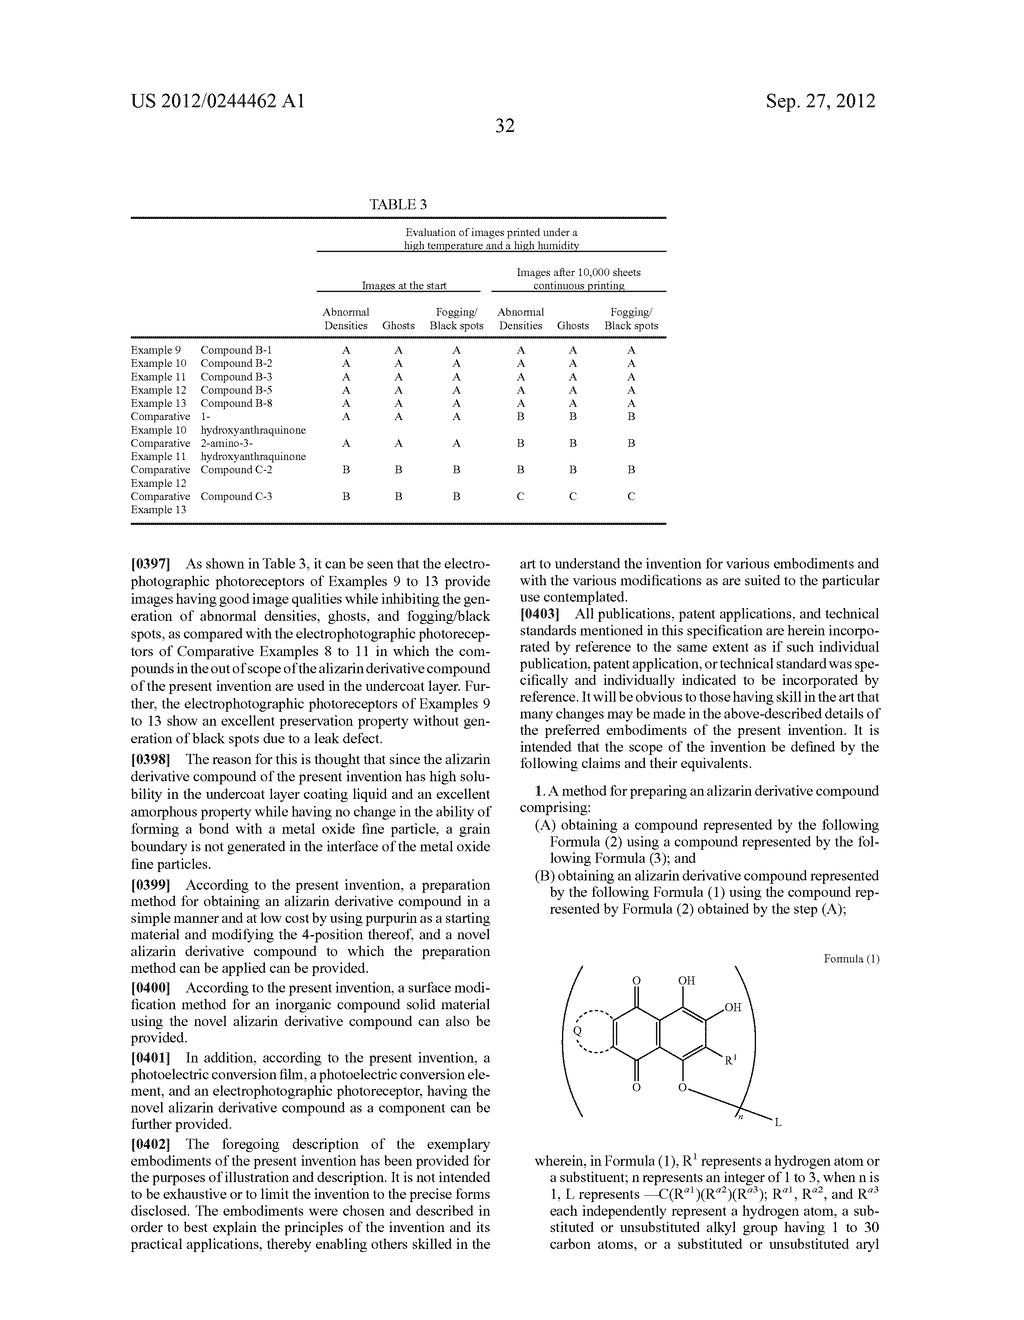 METHOD FOR PREPARING ALIZARIN DERIVATIVE COMPOUND, NOVEL ALIZARIN     DERIVATIVE COMPOUND, SURFACE MODIFICATION METHOD, PHOTOELECTRIC     CONVERSION FILM, PHOTOELECTRIC CONVERSION ELEMENT, AND     ELECTROPHOTOGRAPHIC PHOTORECEPTOR - diagram, schematic, and image 34